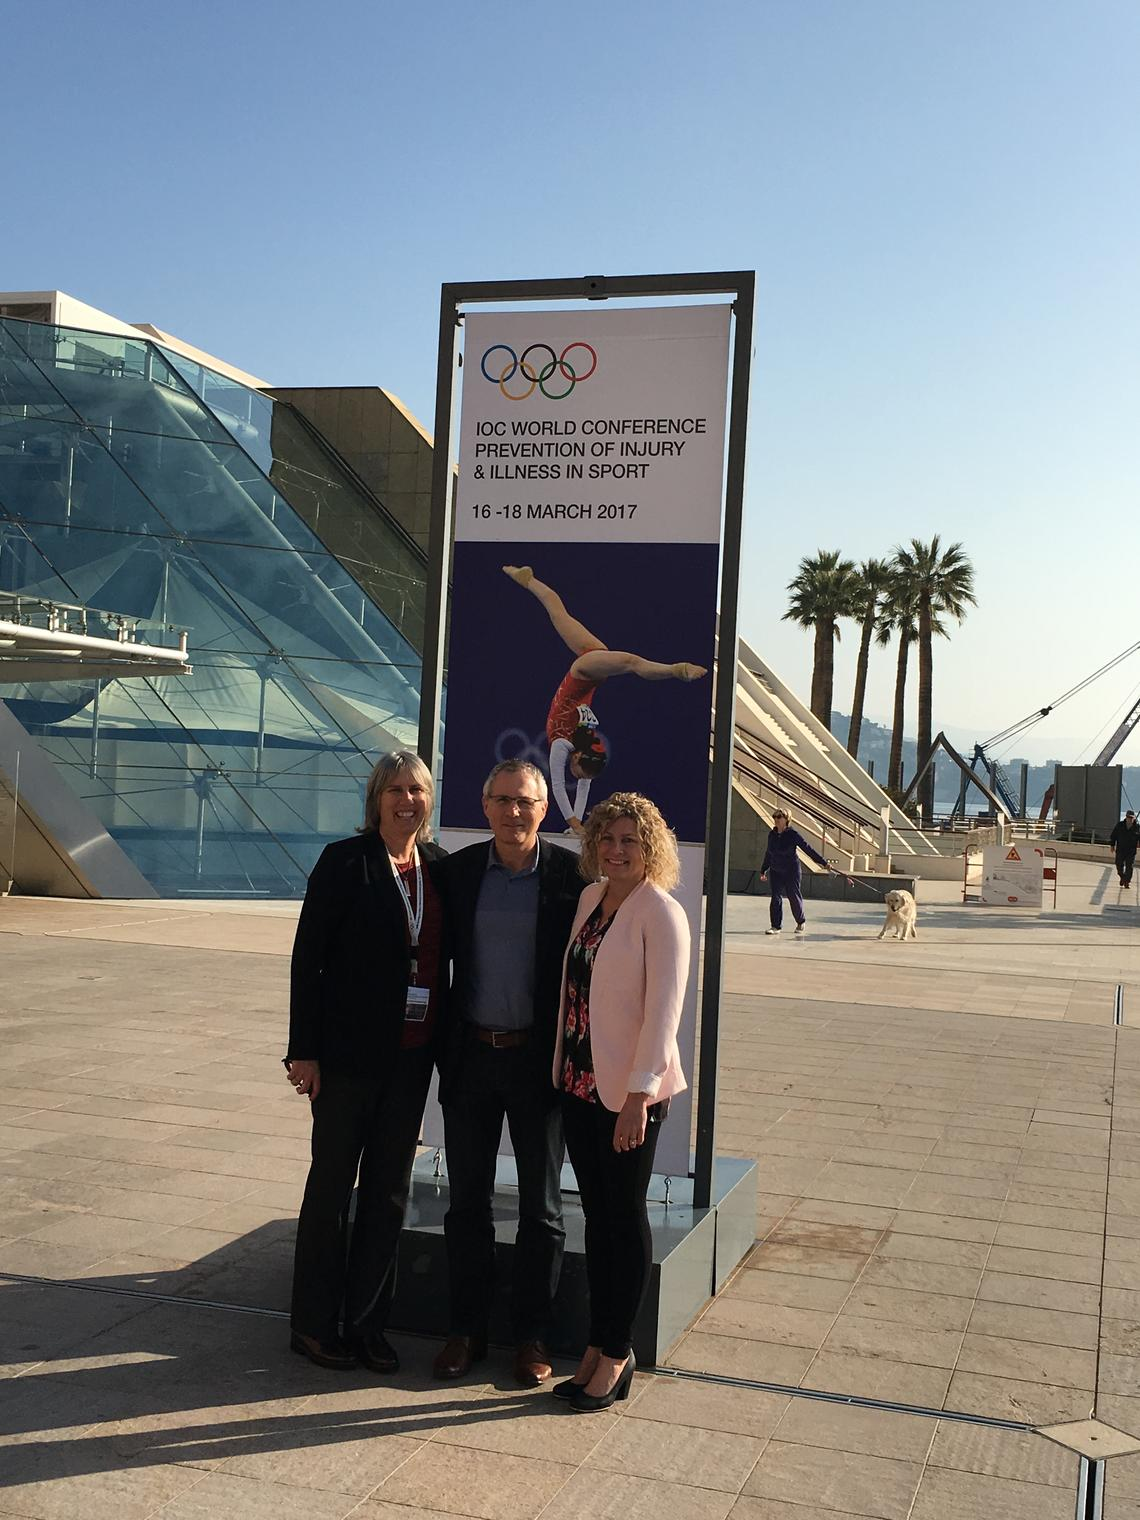 Carolyn Emery, left, Willem Meeuwisse, and Kathryn Schneider at the International Olympic Committee World Conference in Monaco in March.